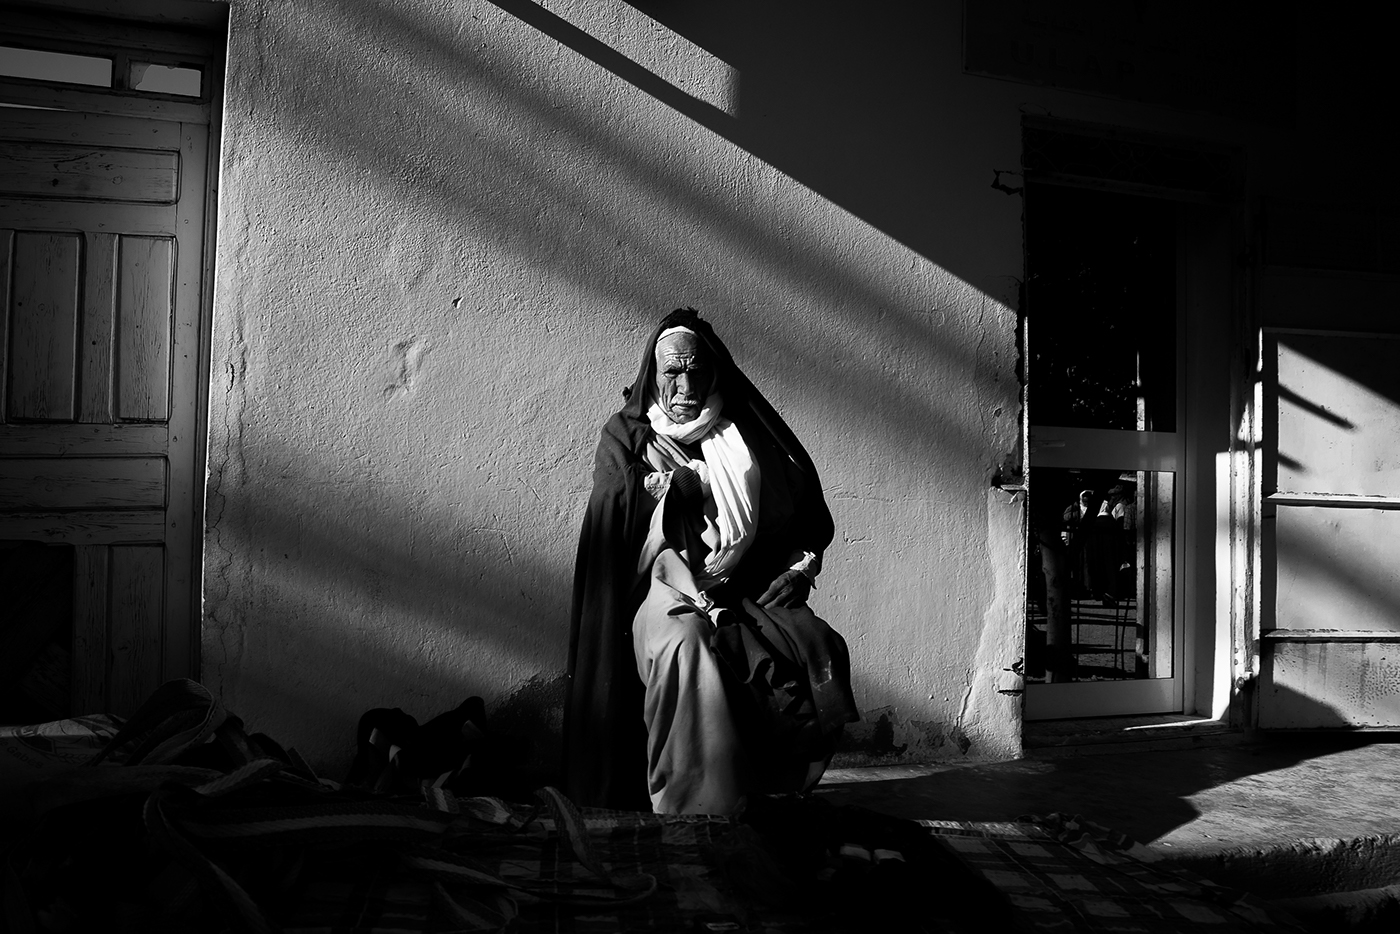 Street Photography of Tunisia by Skander Khlif (14 pics)